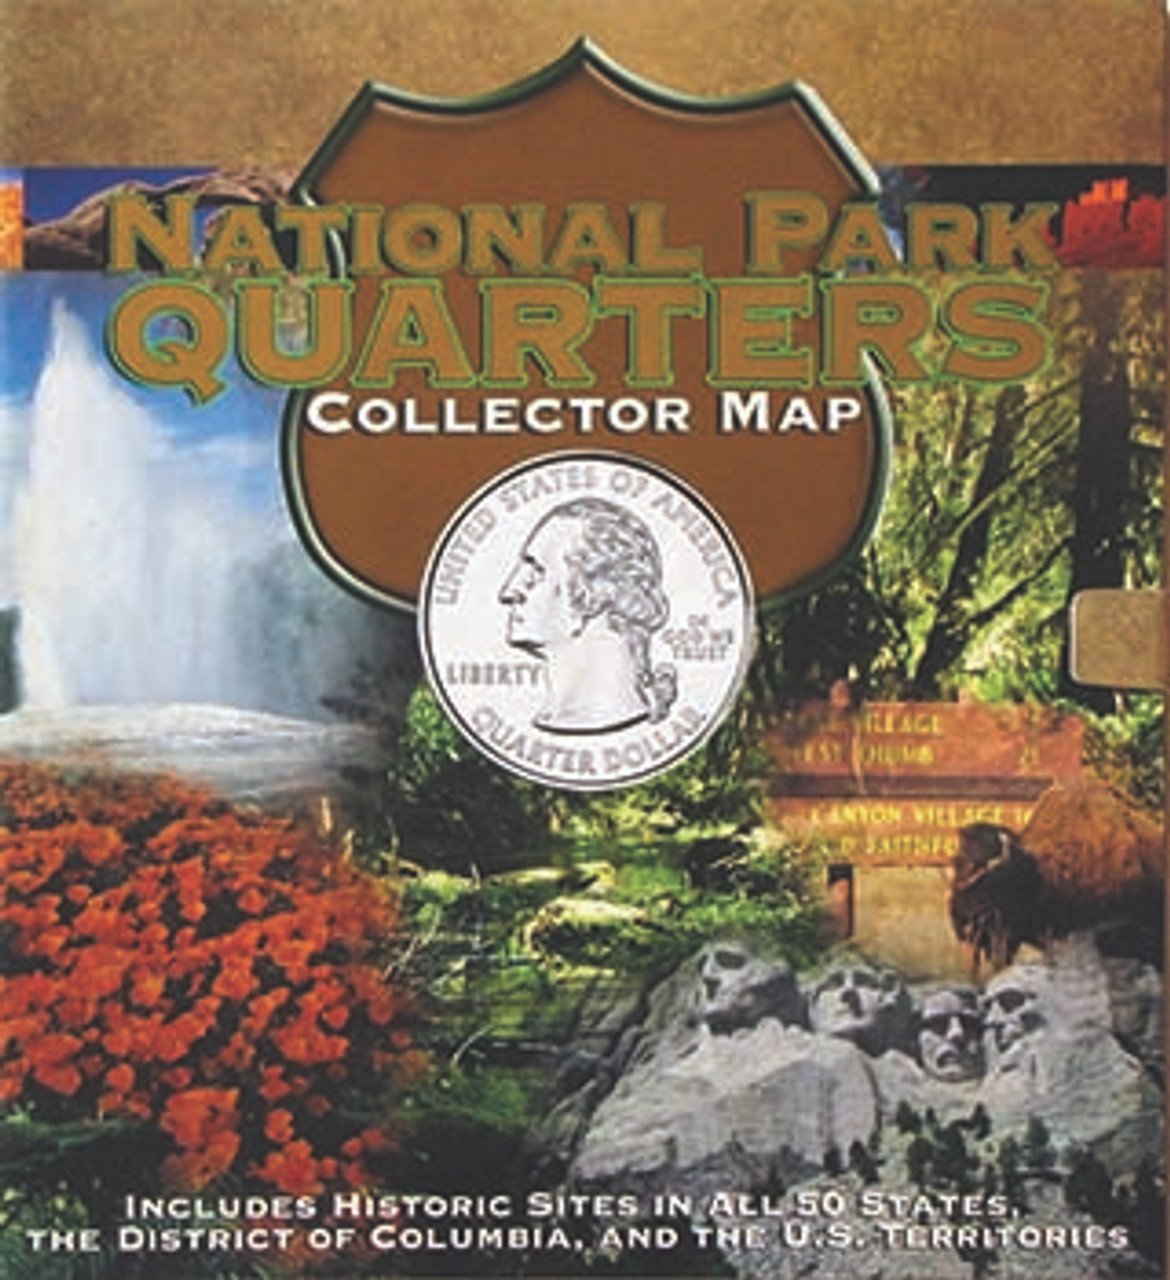 National Park Quarters Collector Map Image 1